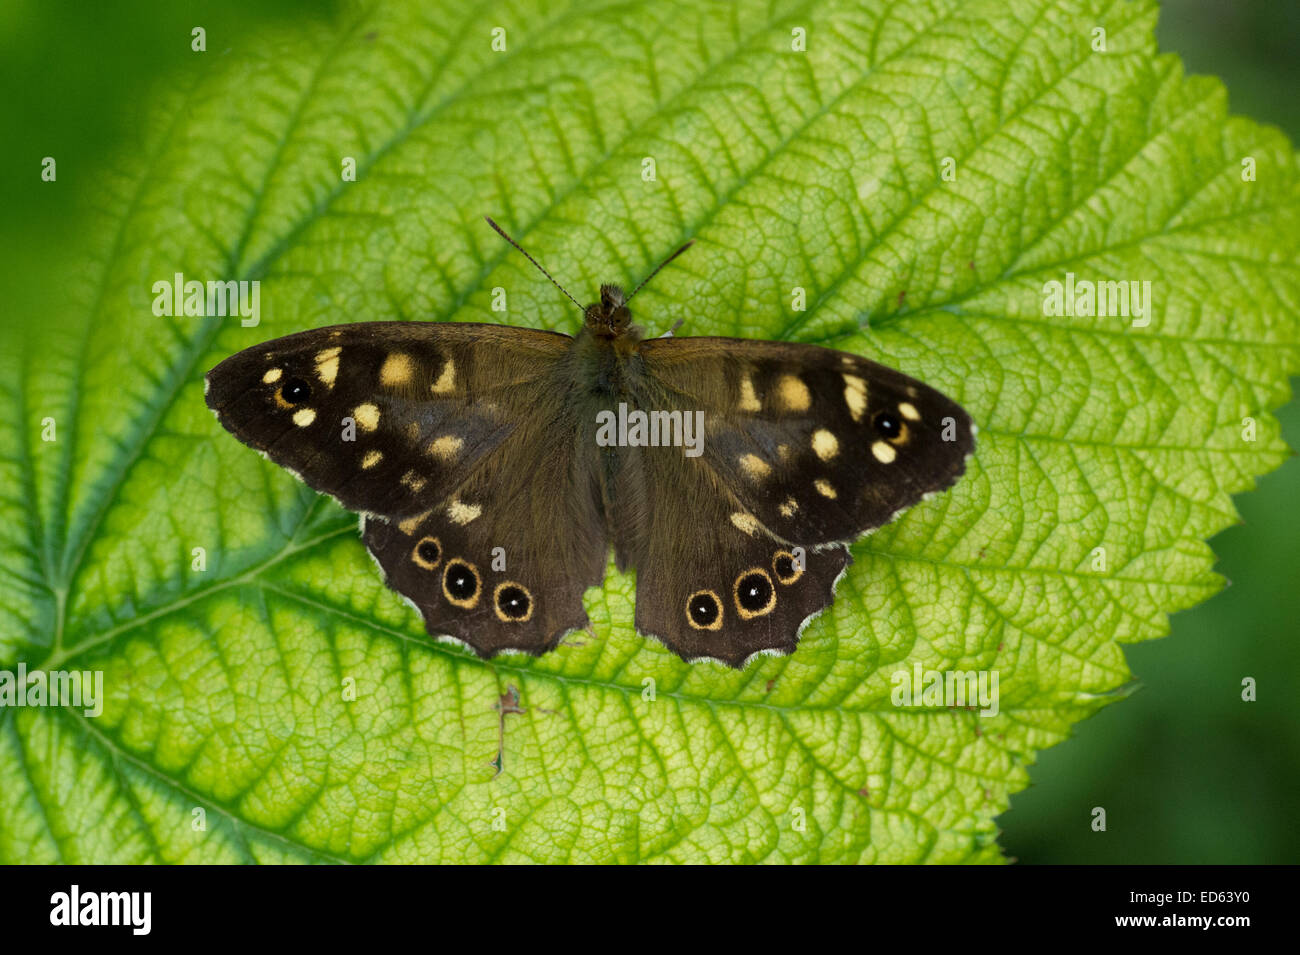 A Speckled Wood Butterfly (Pararge aegeria) on a bramble leaf in East Yorkshire, England - Stock Image